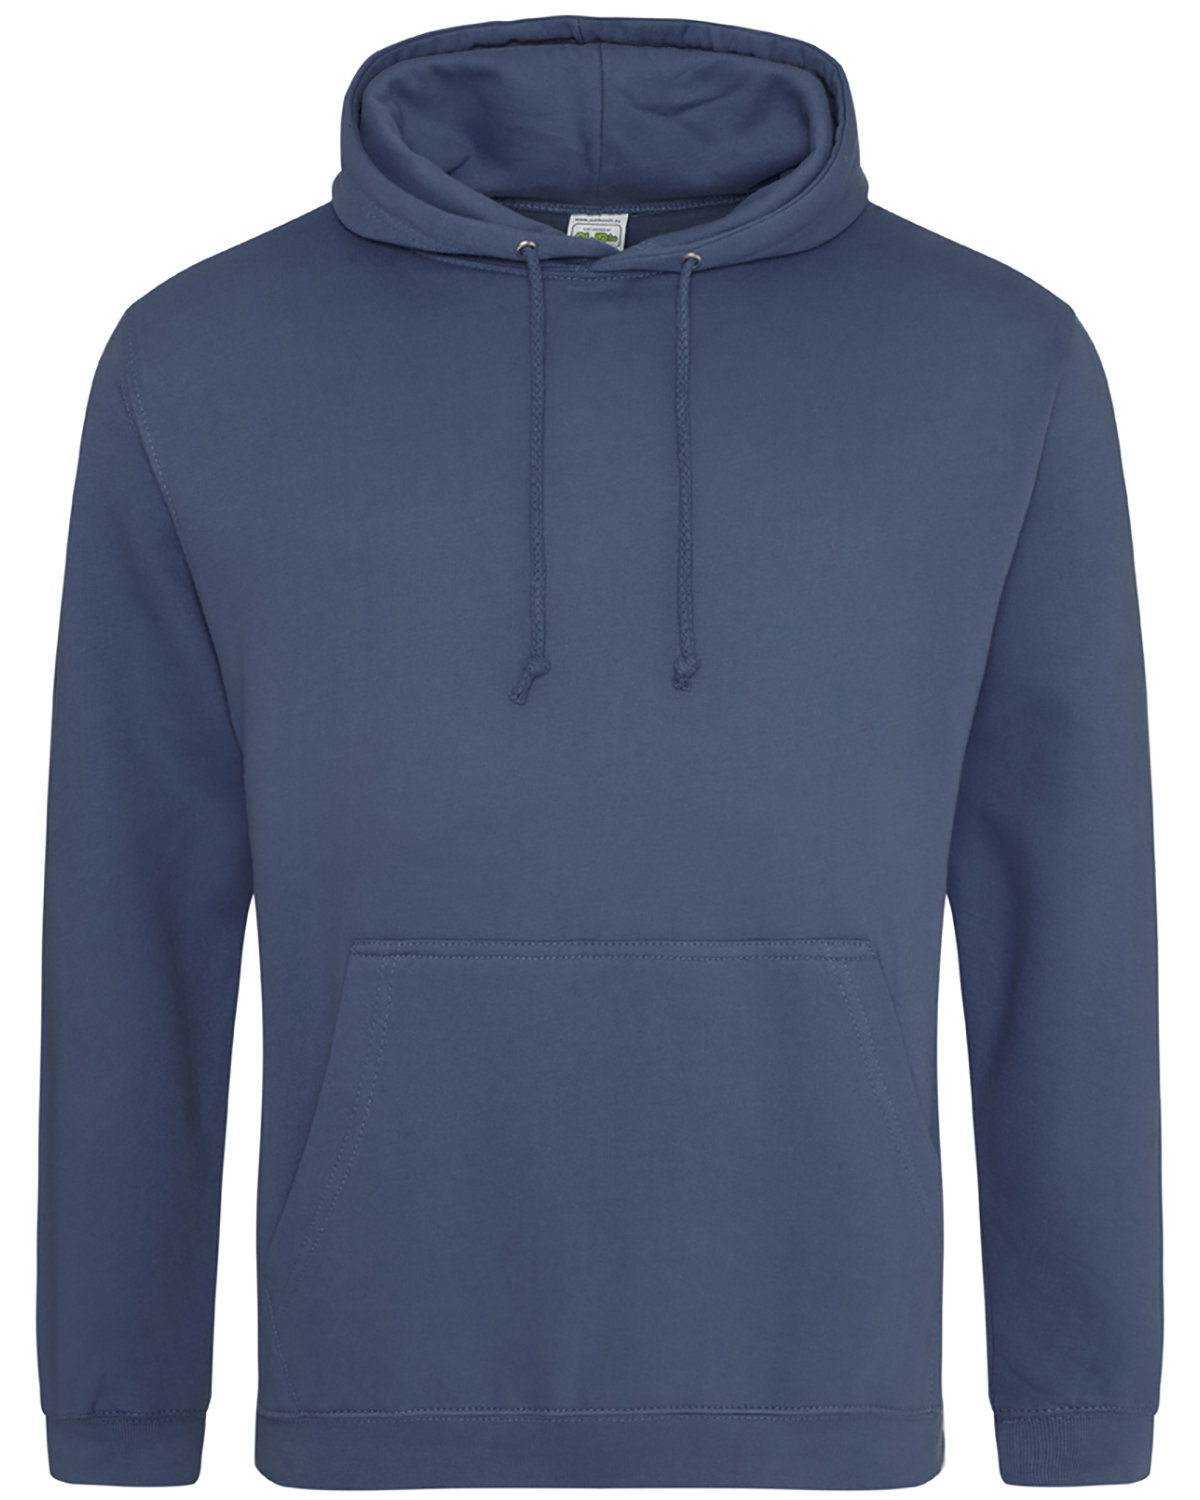 Just Hoods By AWDis Men's 80/20 Midweight College Hooded Sweatshirt AIRFORCE BLUE